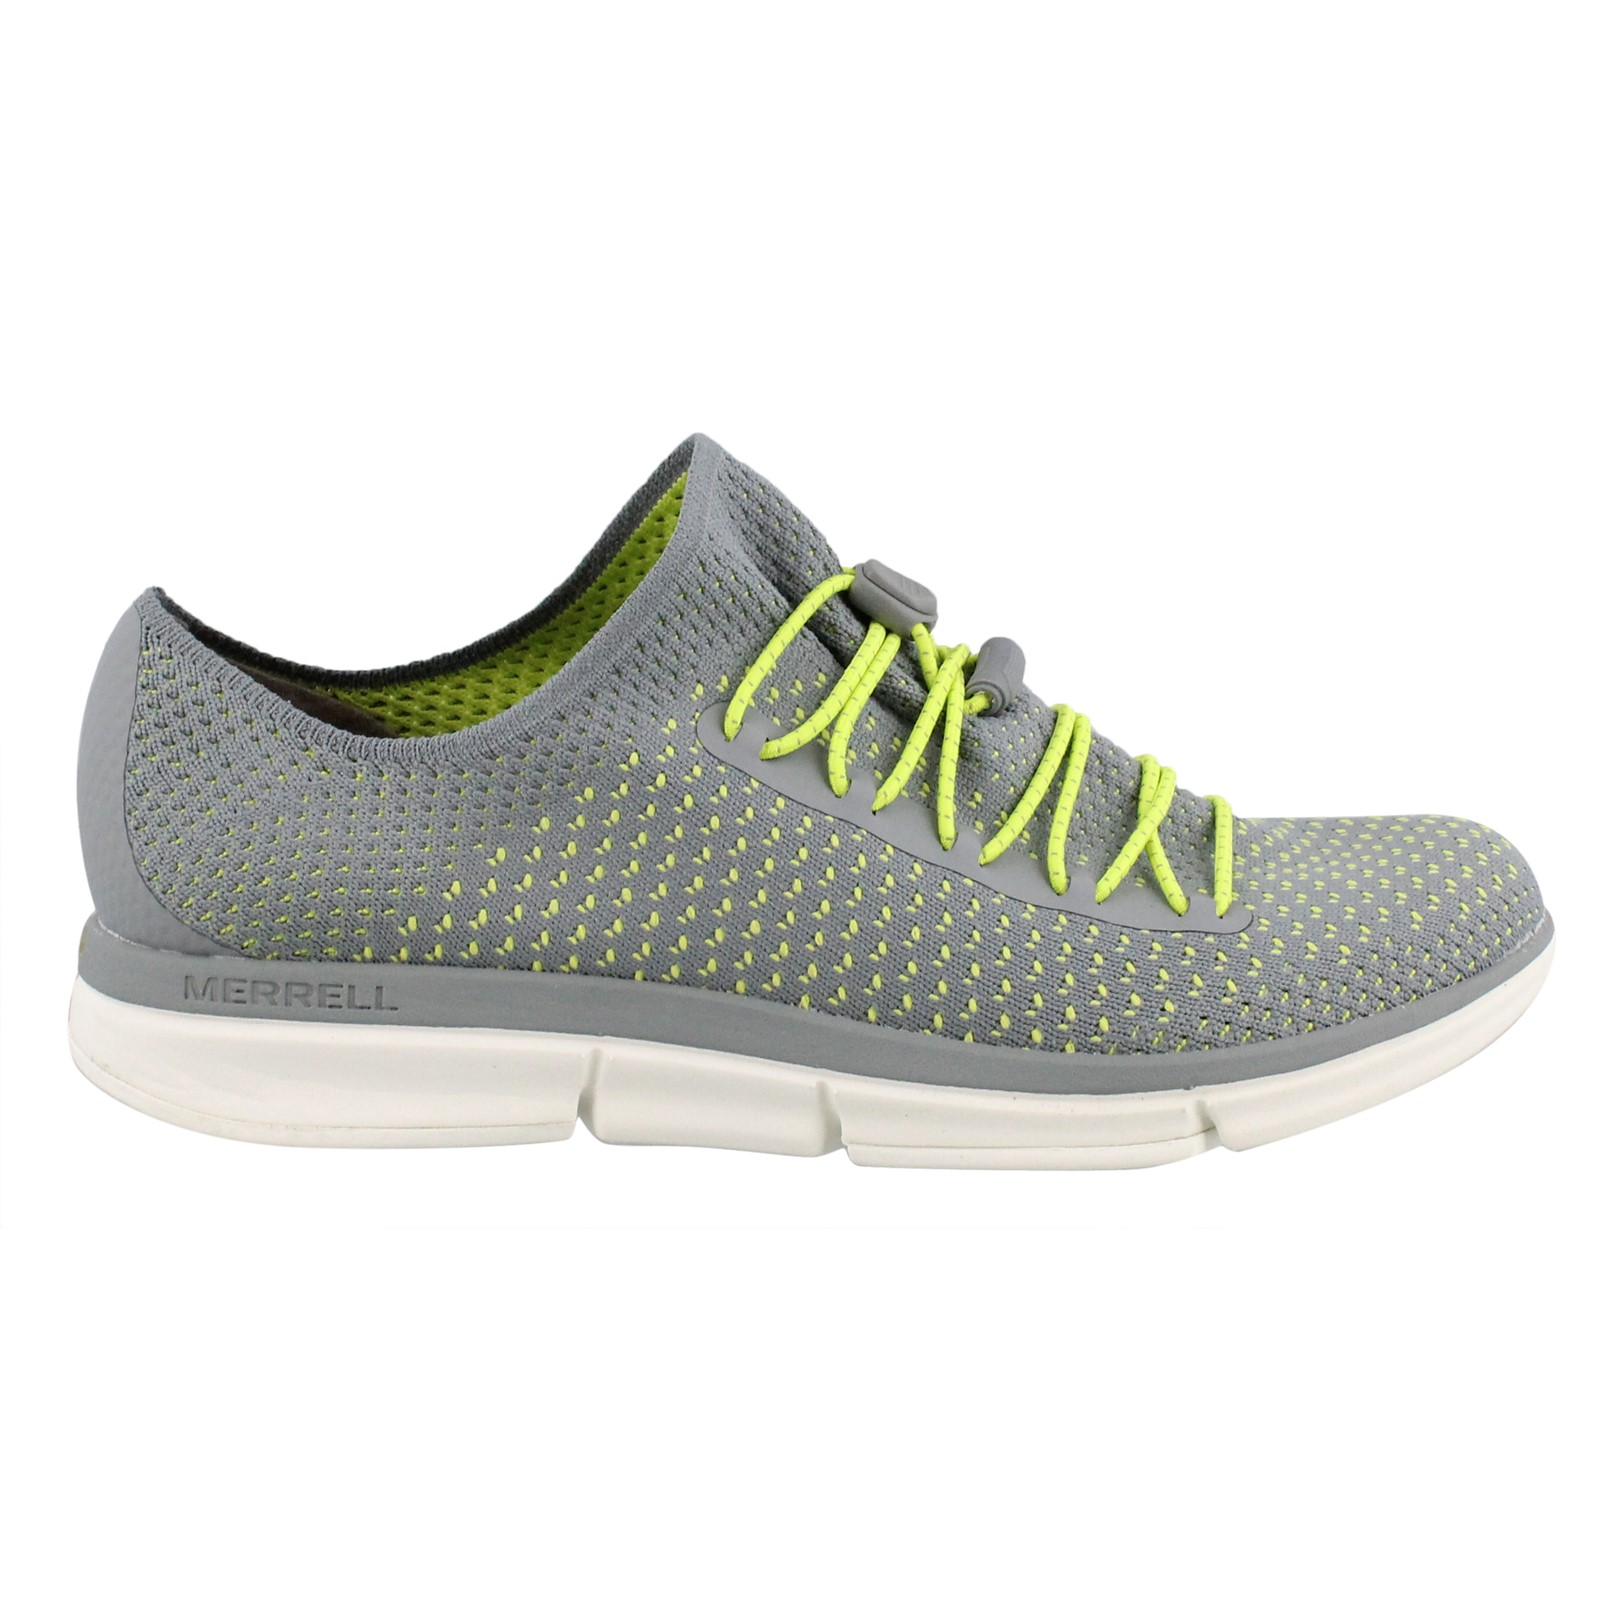 special section info for buy popular Women's Merrell, Zoe Sojourn Lace Knit Q2 Shoes